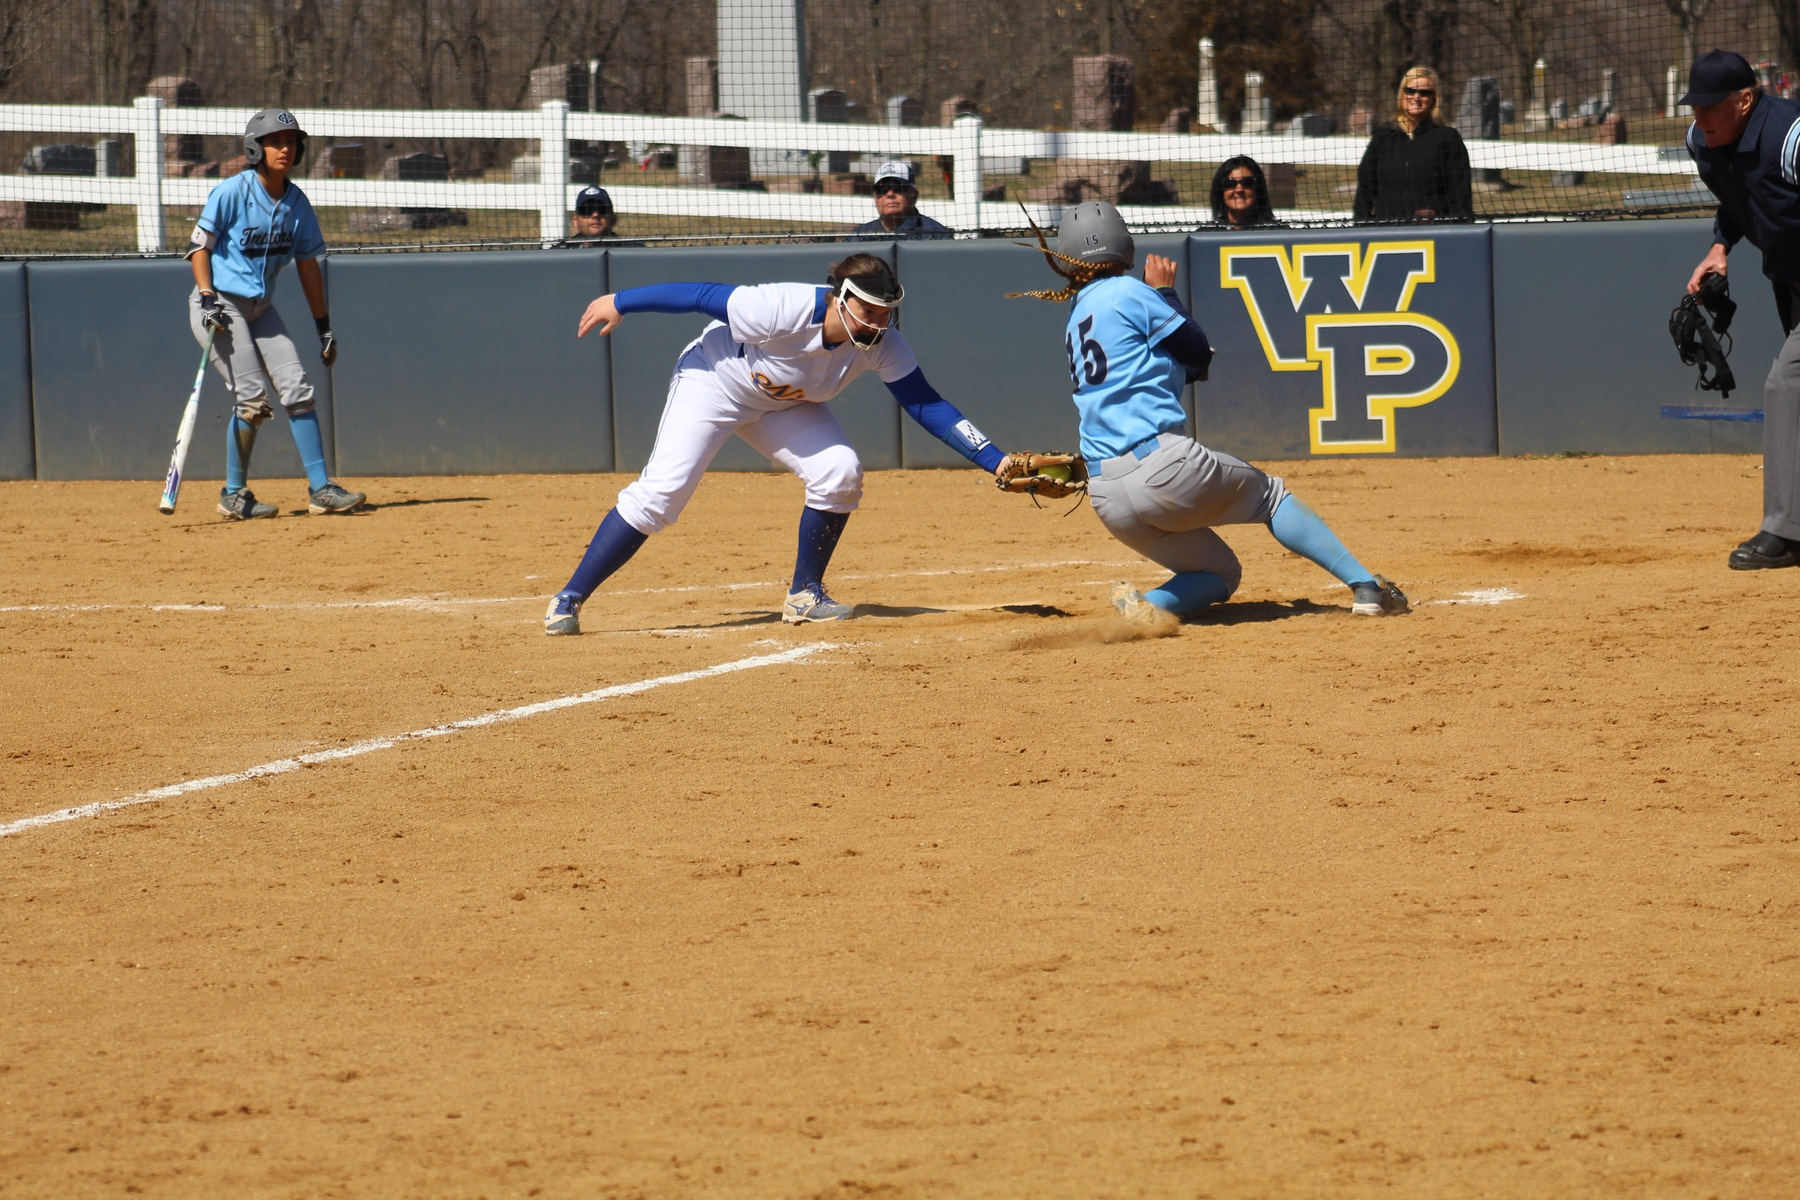 NIACC pitcher Courtney Johannes tags out Iowa Central's Alyssa Dema in the first game of Friday's doubleheader.